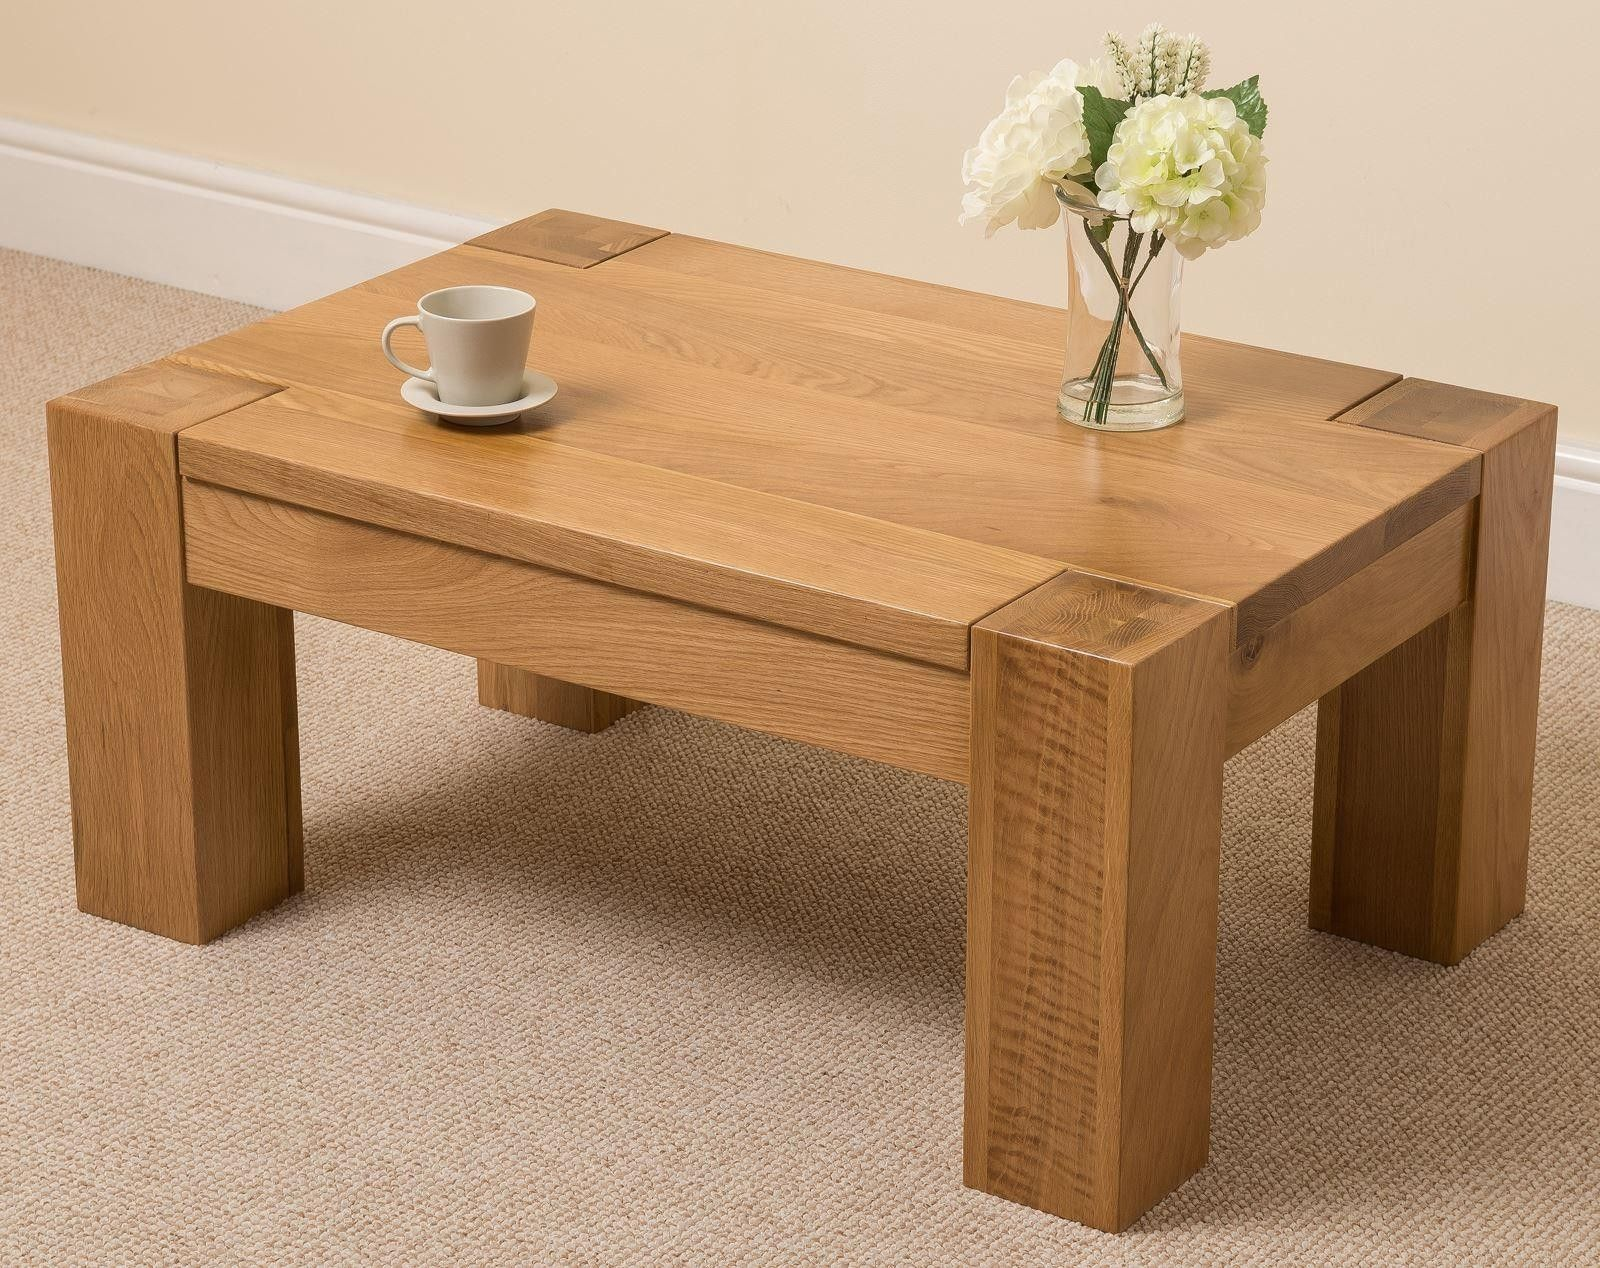 Solid light wood coffee table solid wood coffee tables solid light wood coffee table geotapseo Choice Image